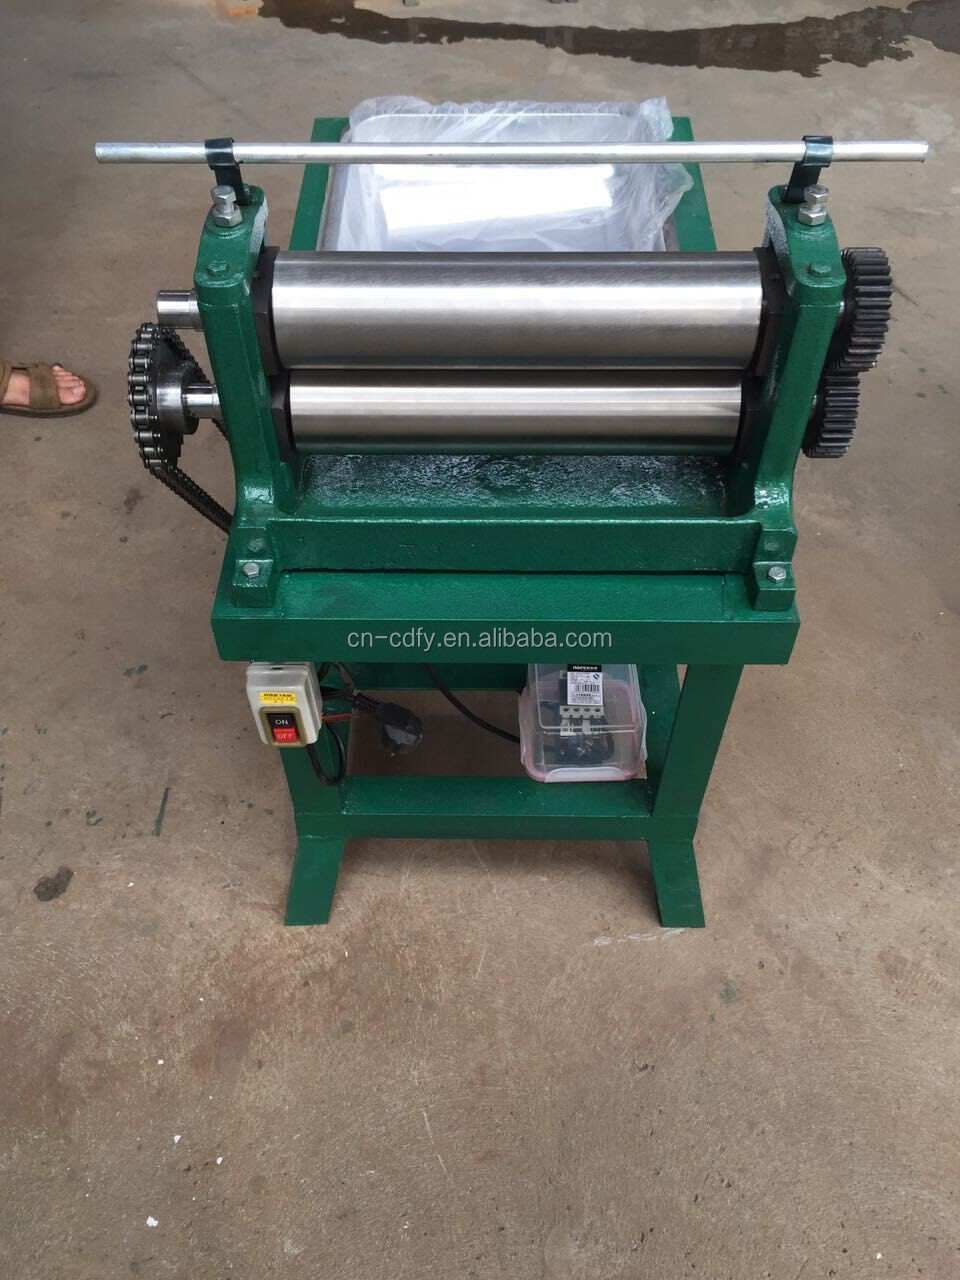 Manual and Electric Smooth Beeswax Foundation Mill/Beeswax Press Machine